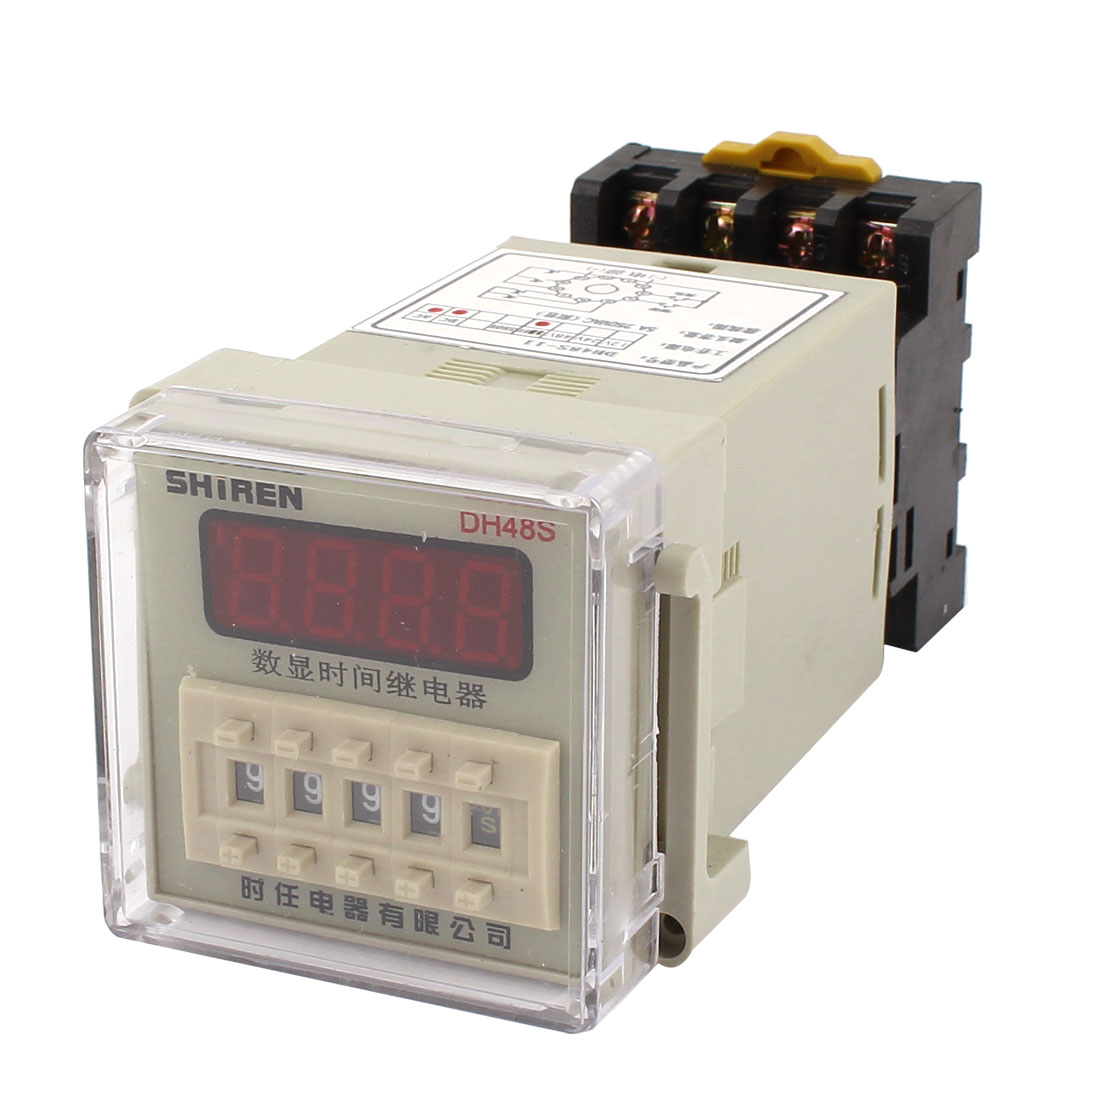 AC 110V 4PDT Digital Display 0.01s-9999h Time Delay Relay Timer DH48S-11